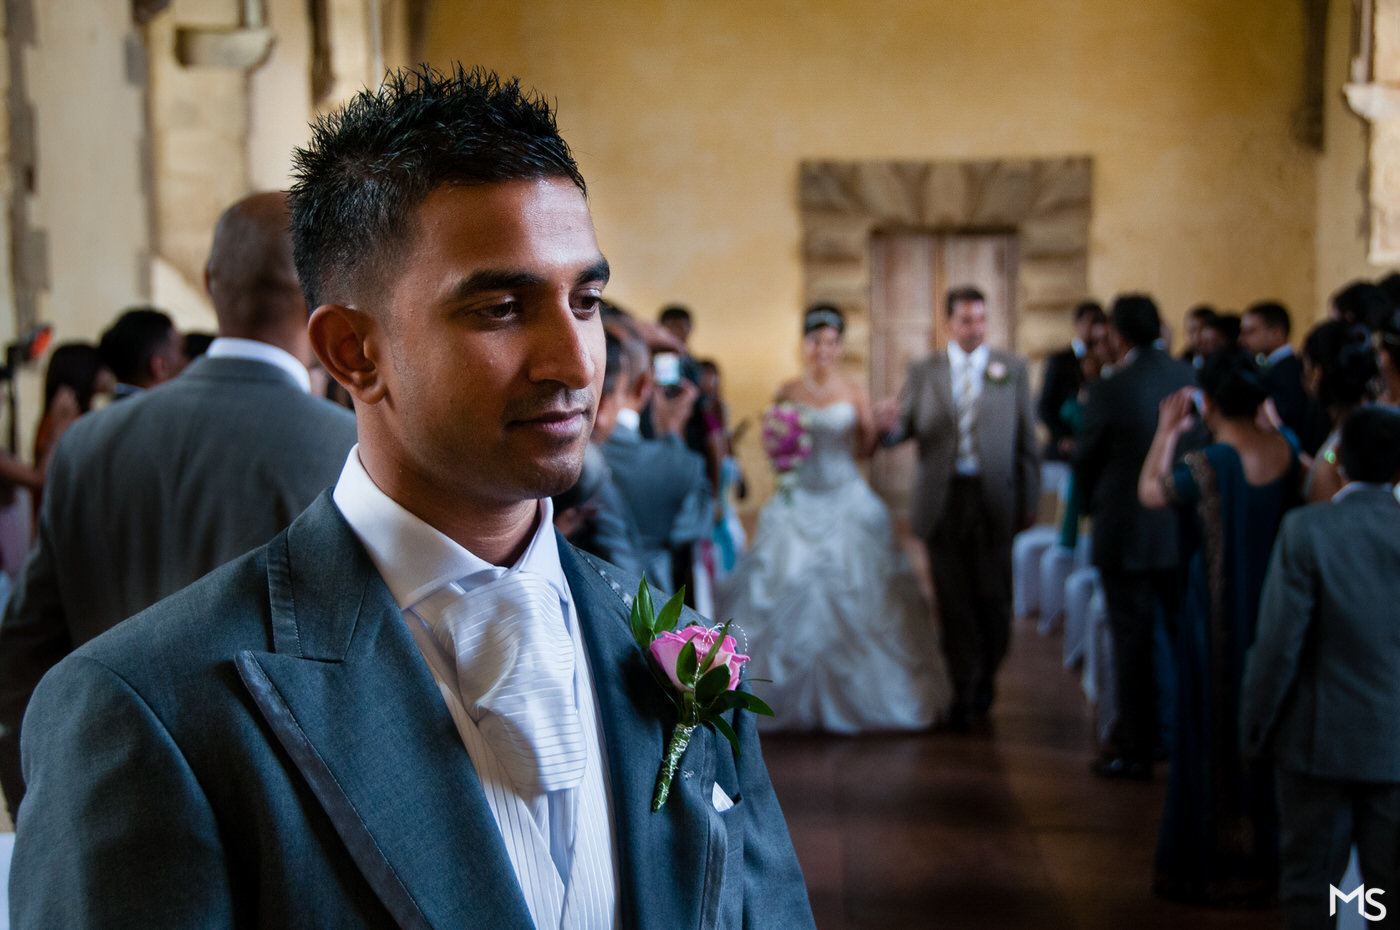 Bolsover-Castle-Indian-wedding - 10_DSC_4640.jpg